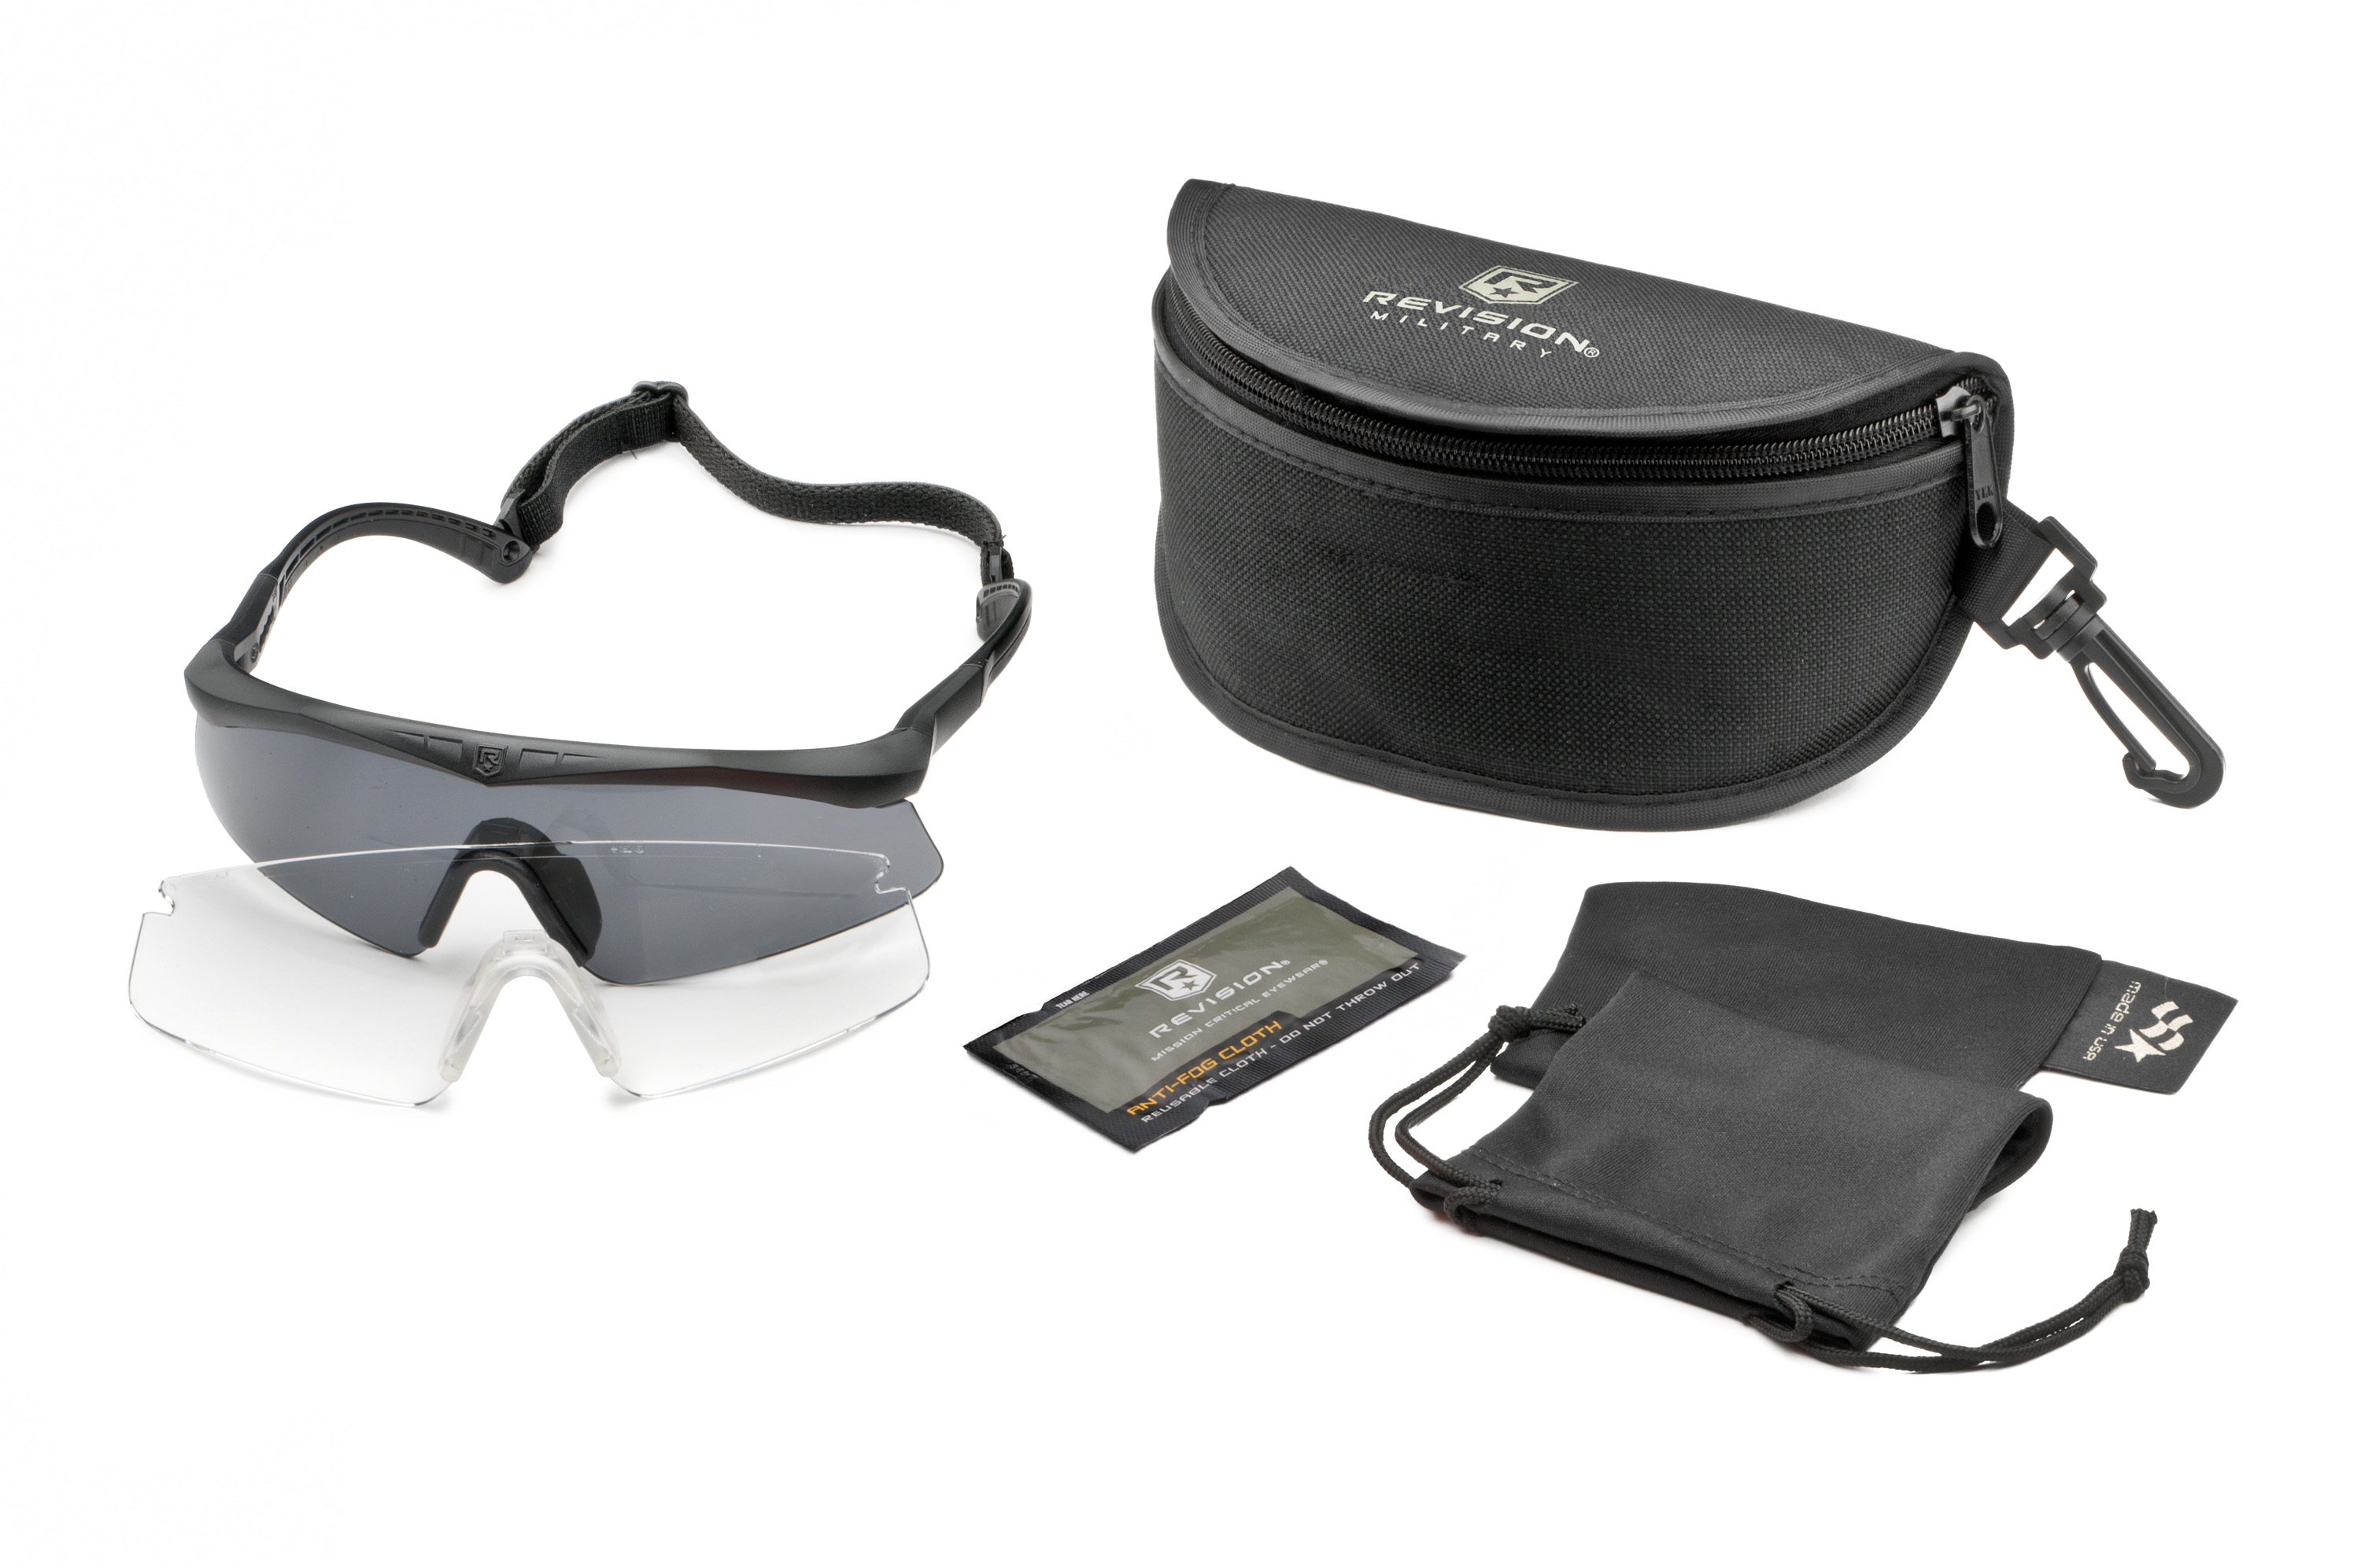 The 2-lens Sawfly U.S. Military Eyewear Kit in size Small includes an ergonomic frame with removable retention band, smoke and clear lenses, an anti-fog cloth, microfiber cleaning pouch and stowage case.